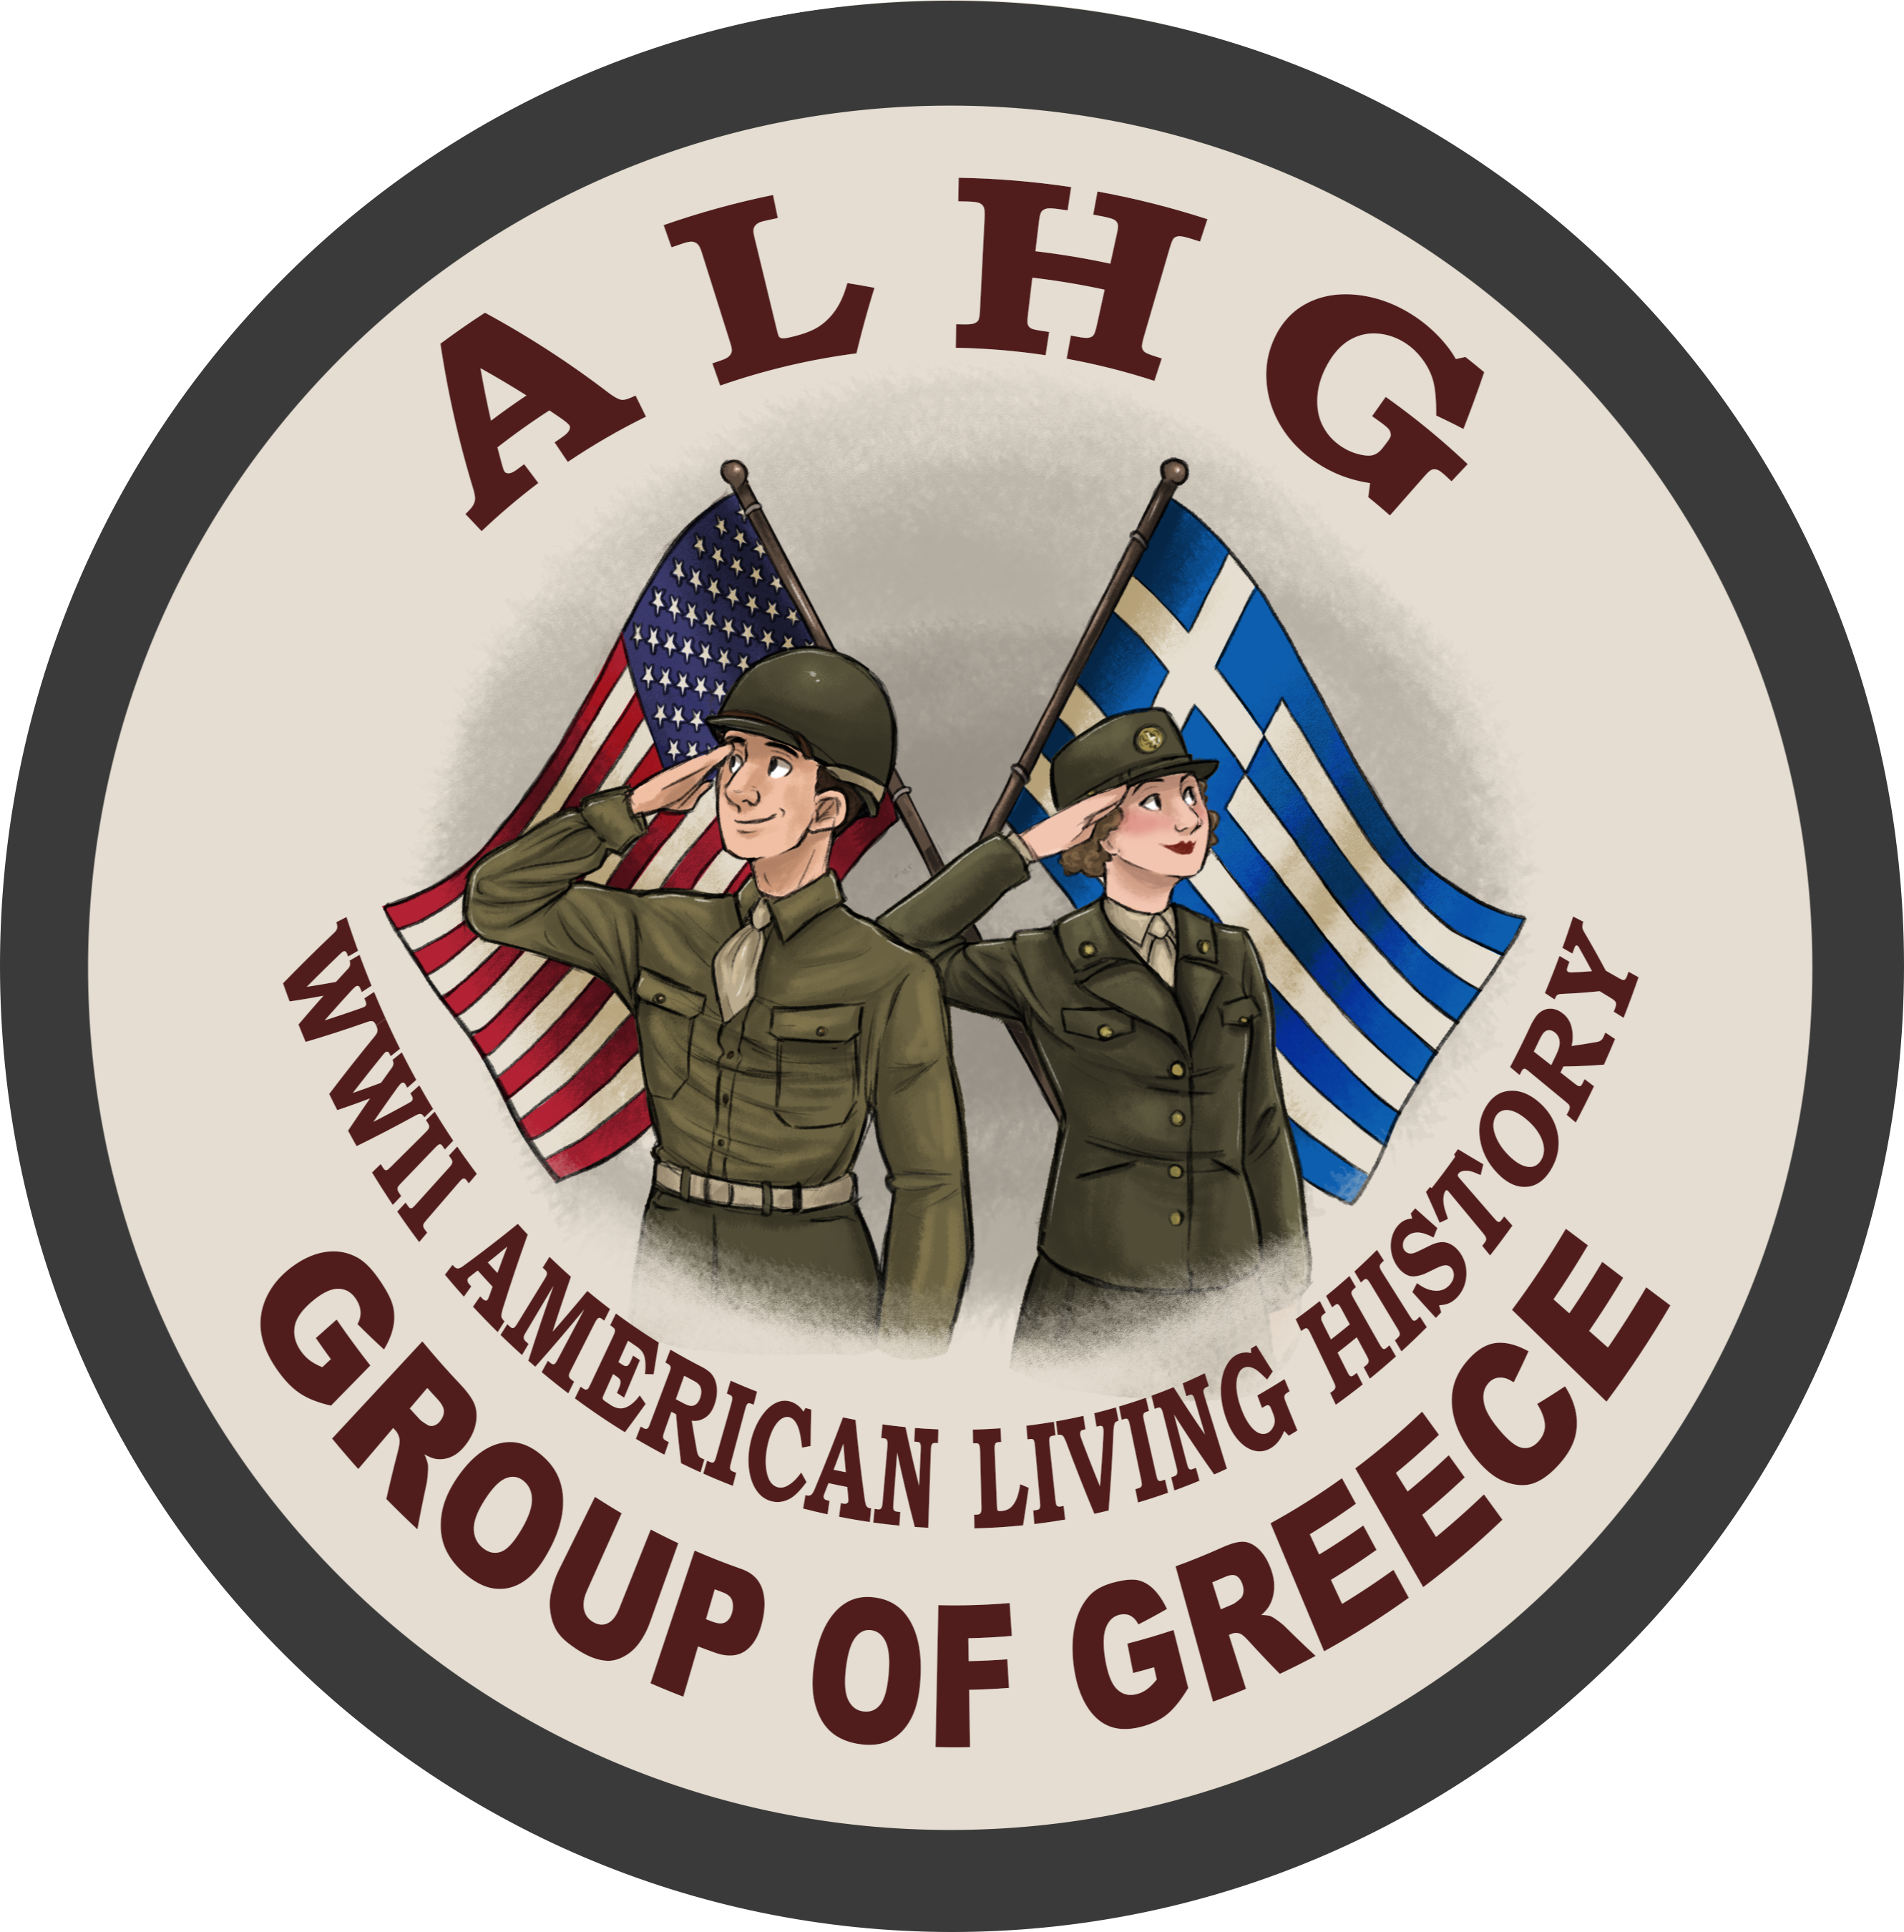 WWII American Living History Group of Greece